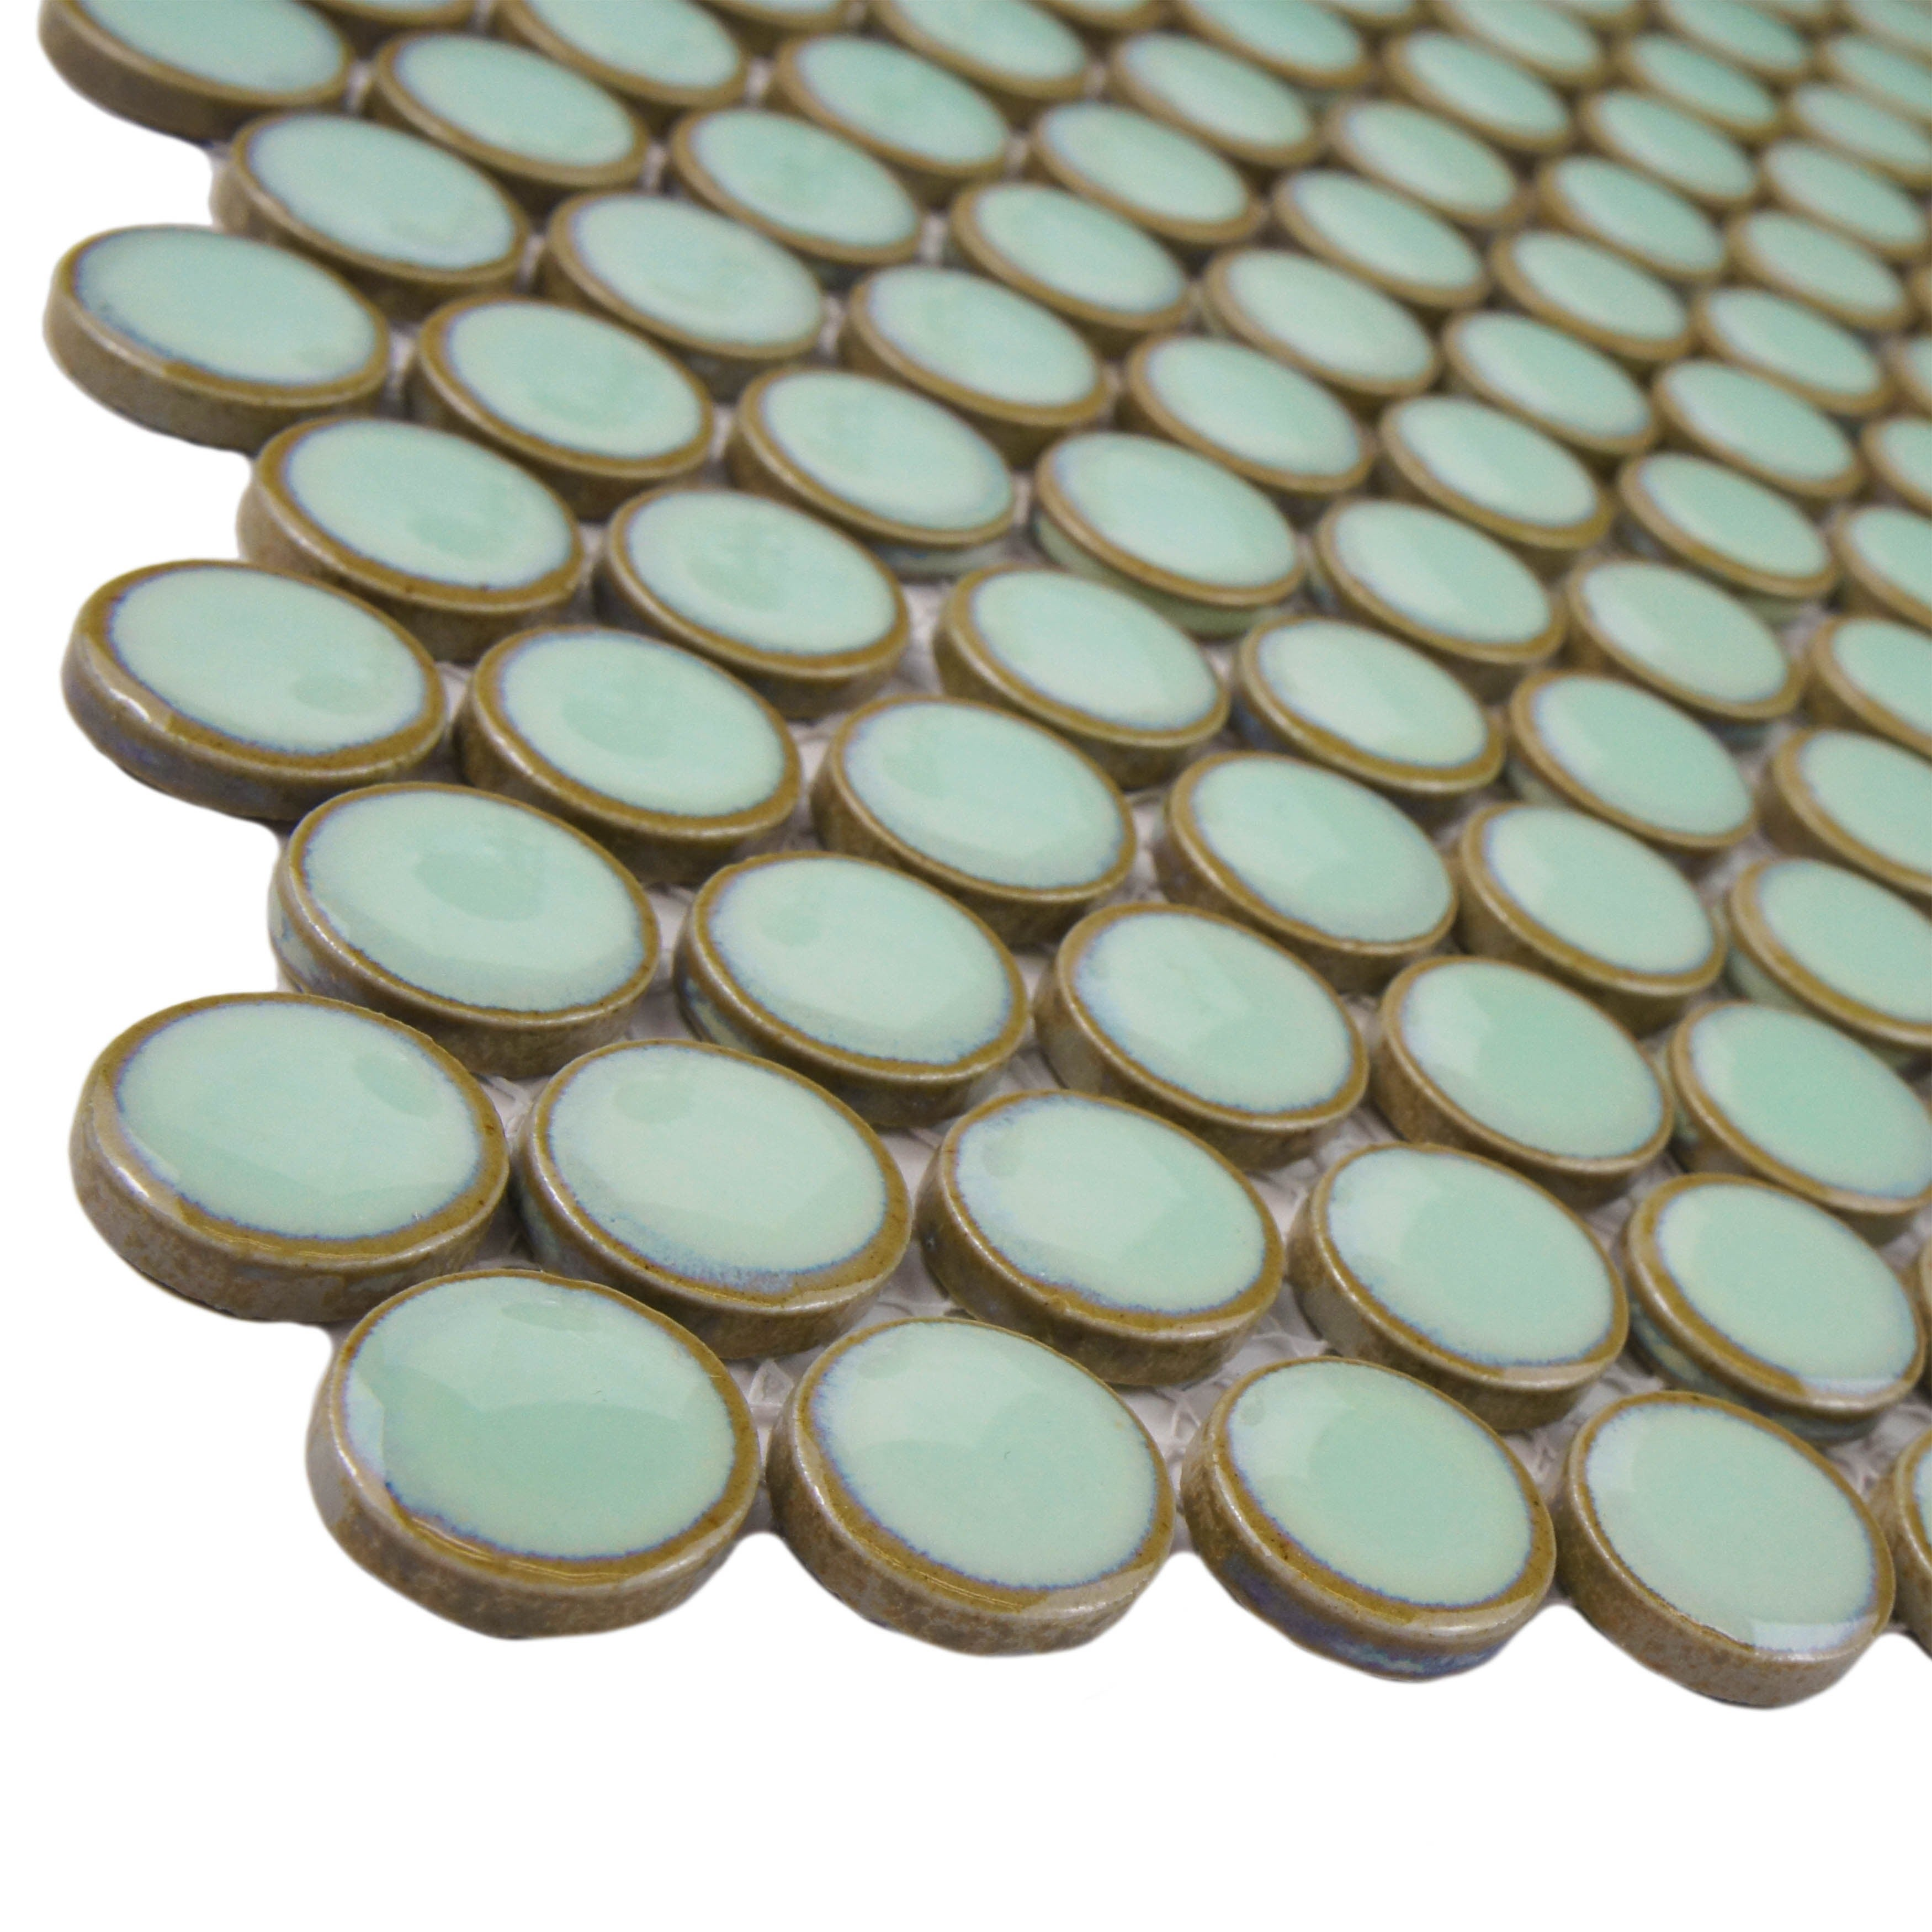 Somertile 12x12 625 Inch Penny Light Green Porcelain Mosaic Floor And Wall Tile 10 Case 2 Sqft Free Shipping On Orders Over 45